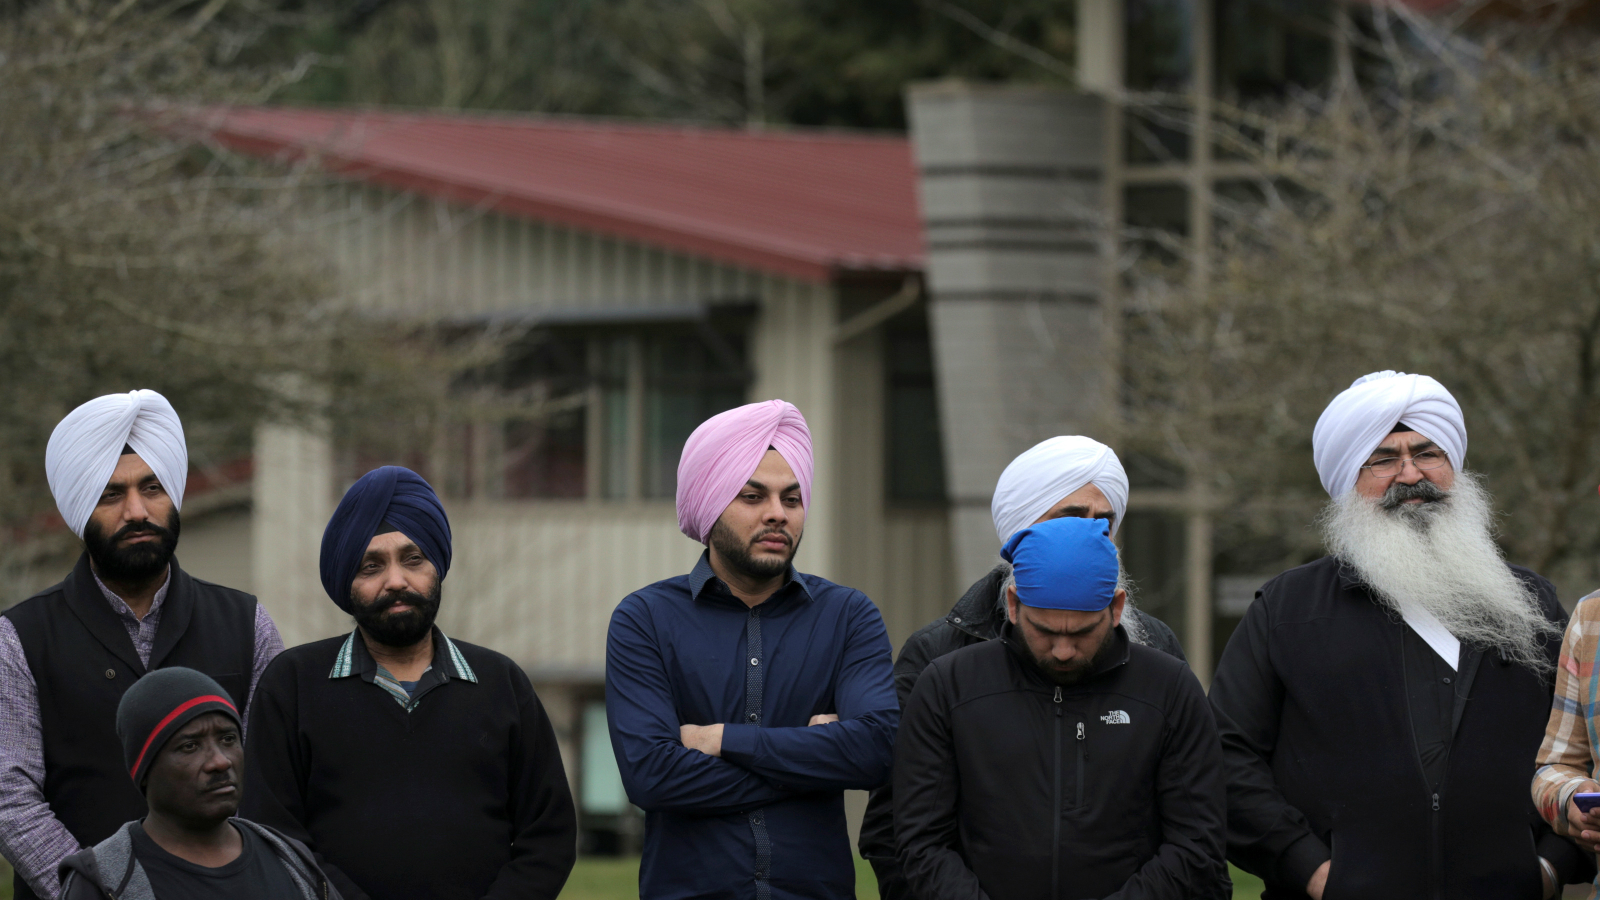 Sikh men listen during a vigil in honor of Srinivas Kuchibhotla, an immigrant from India who was recently shot and killed in Kansas, at Crossroads Park in Bellevue, Washington, U.S. March 5, 2017.